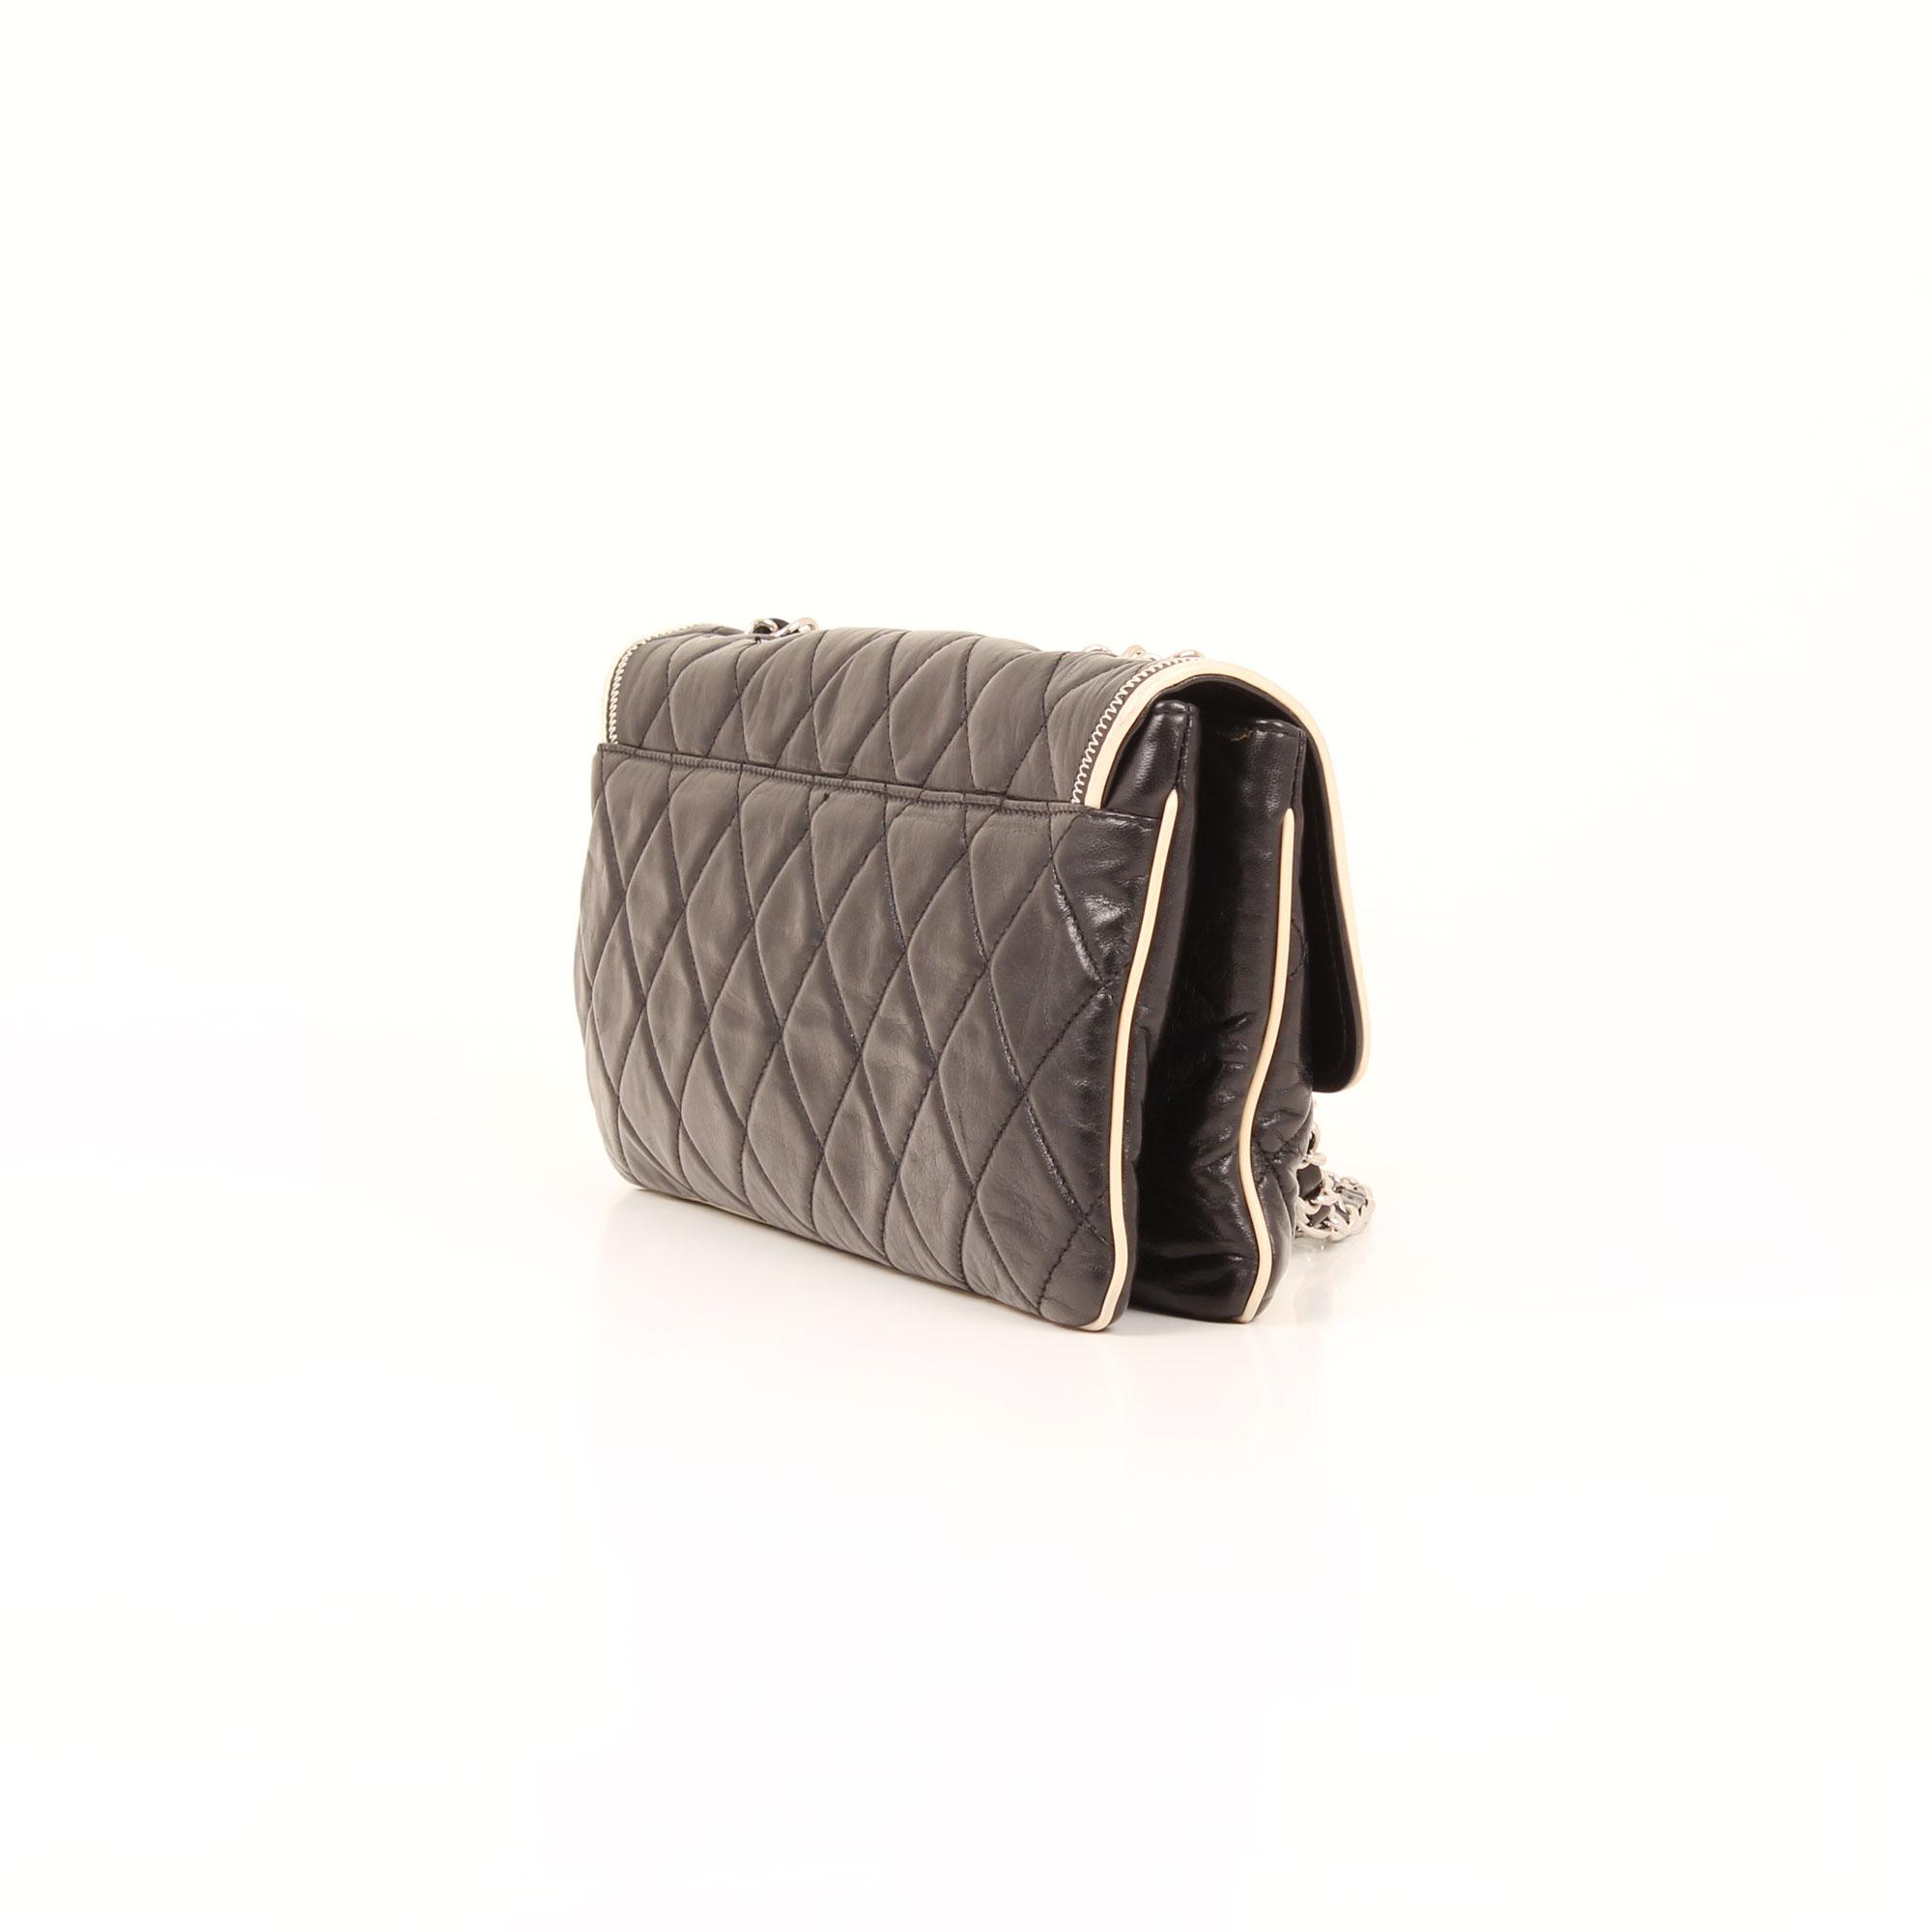 bag-chanel-east-west-giant-reissue-leather-aged-calfskin-black-side-1